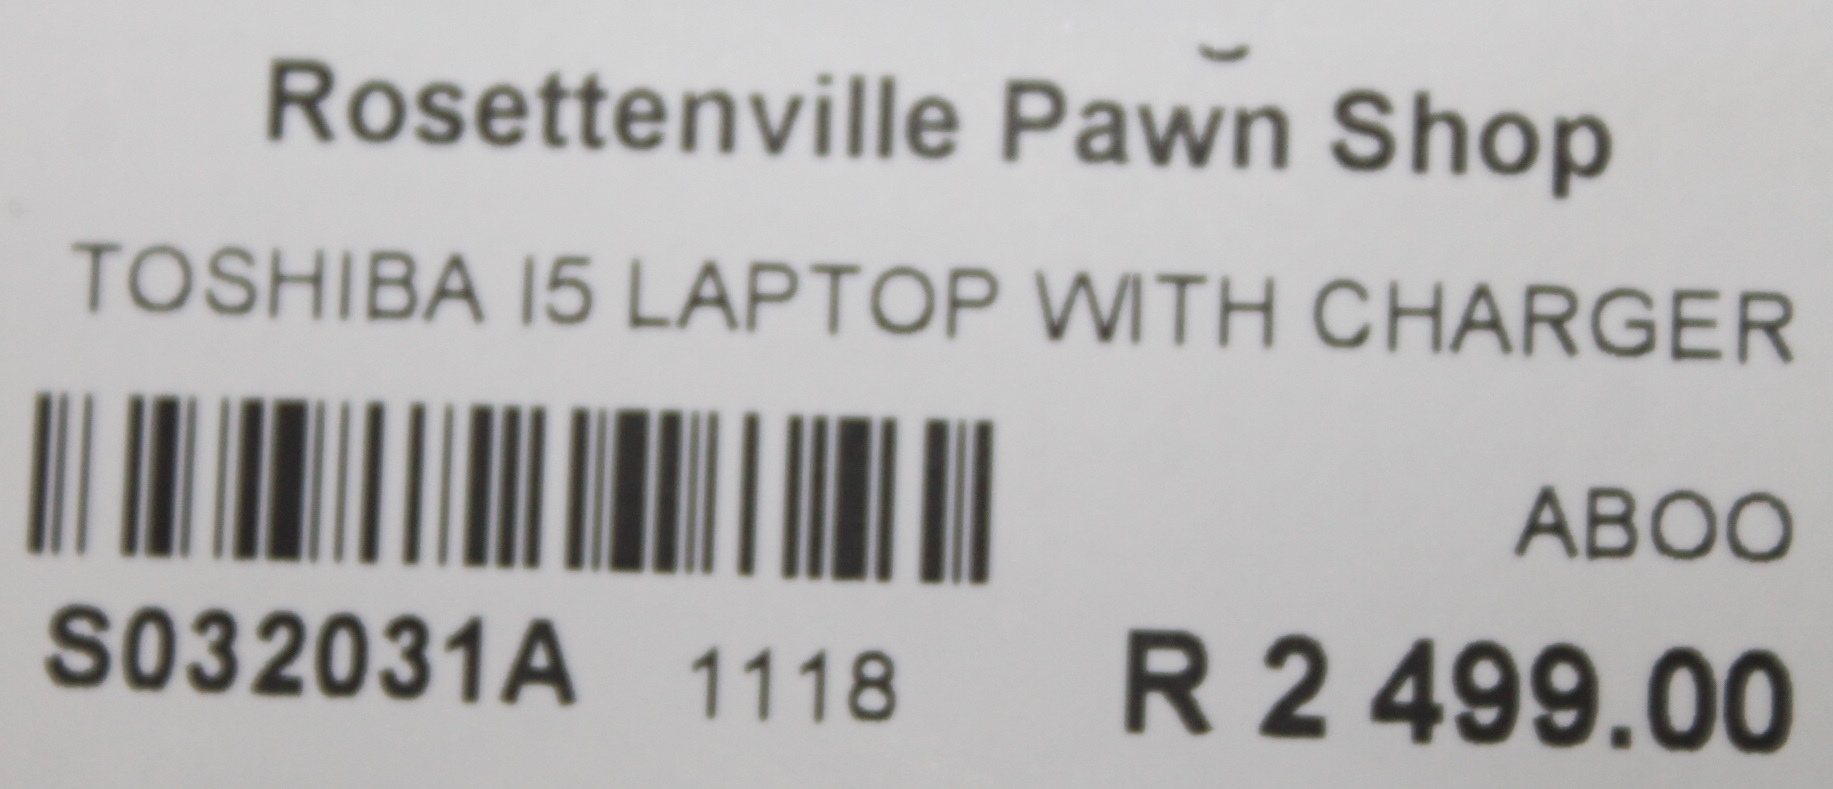 Toshiba I5 laptop with charger S032031A #Rosettenvillepawnshop